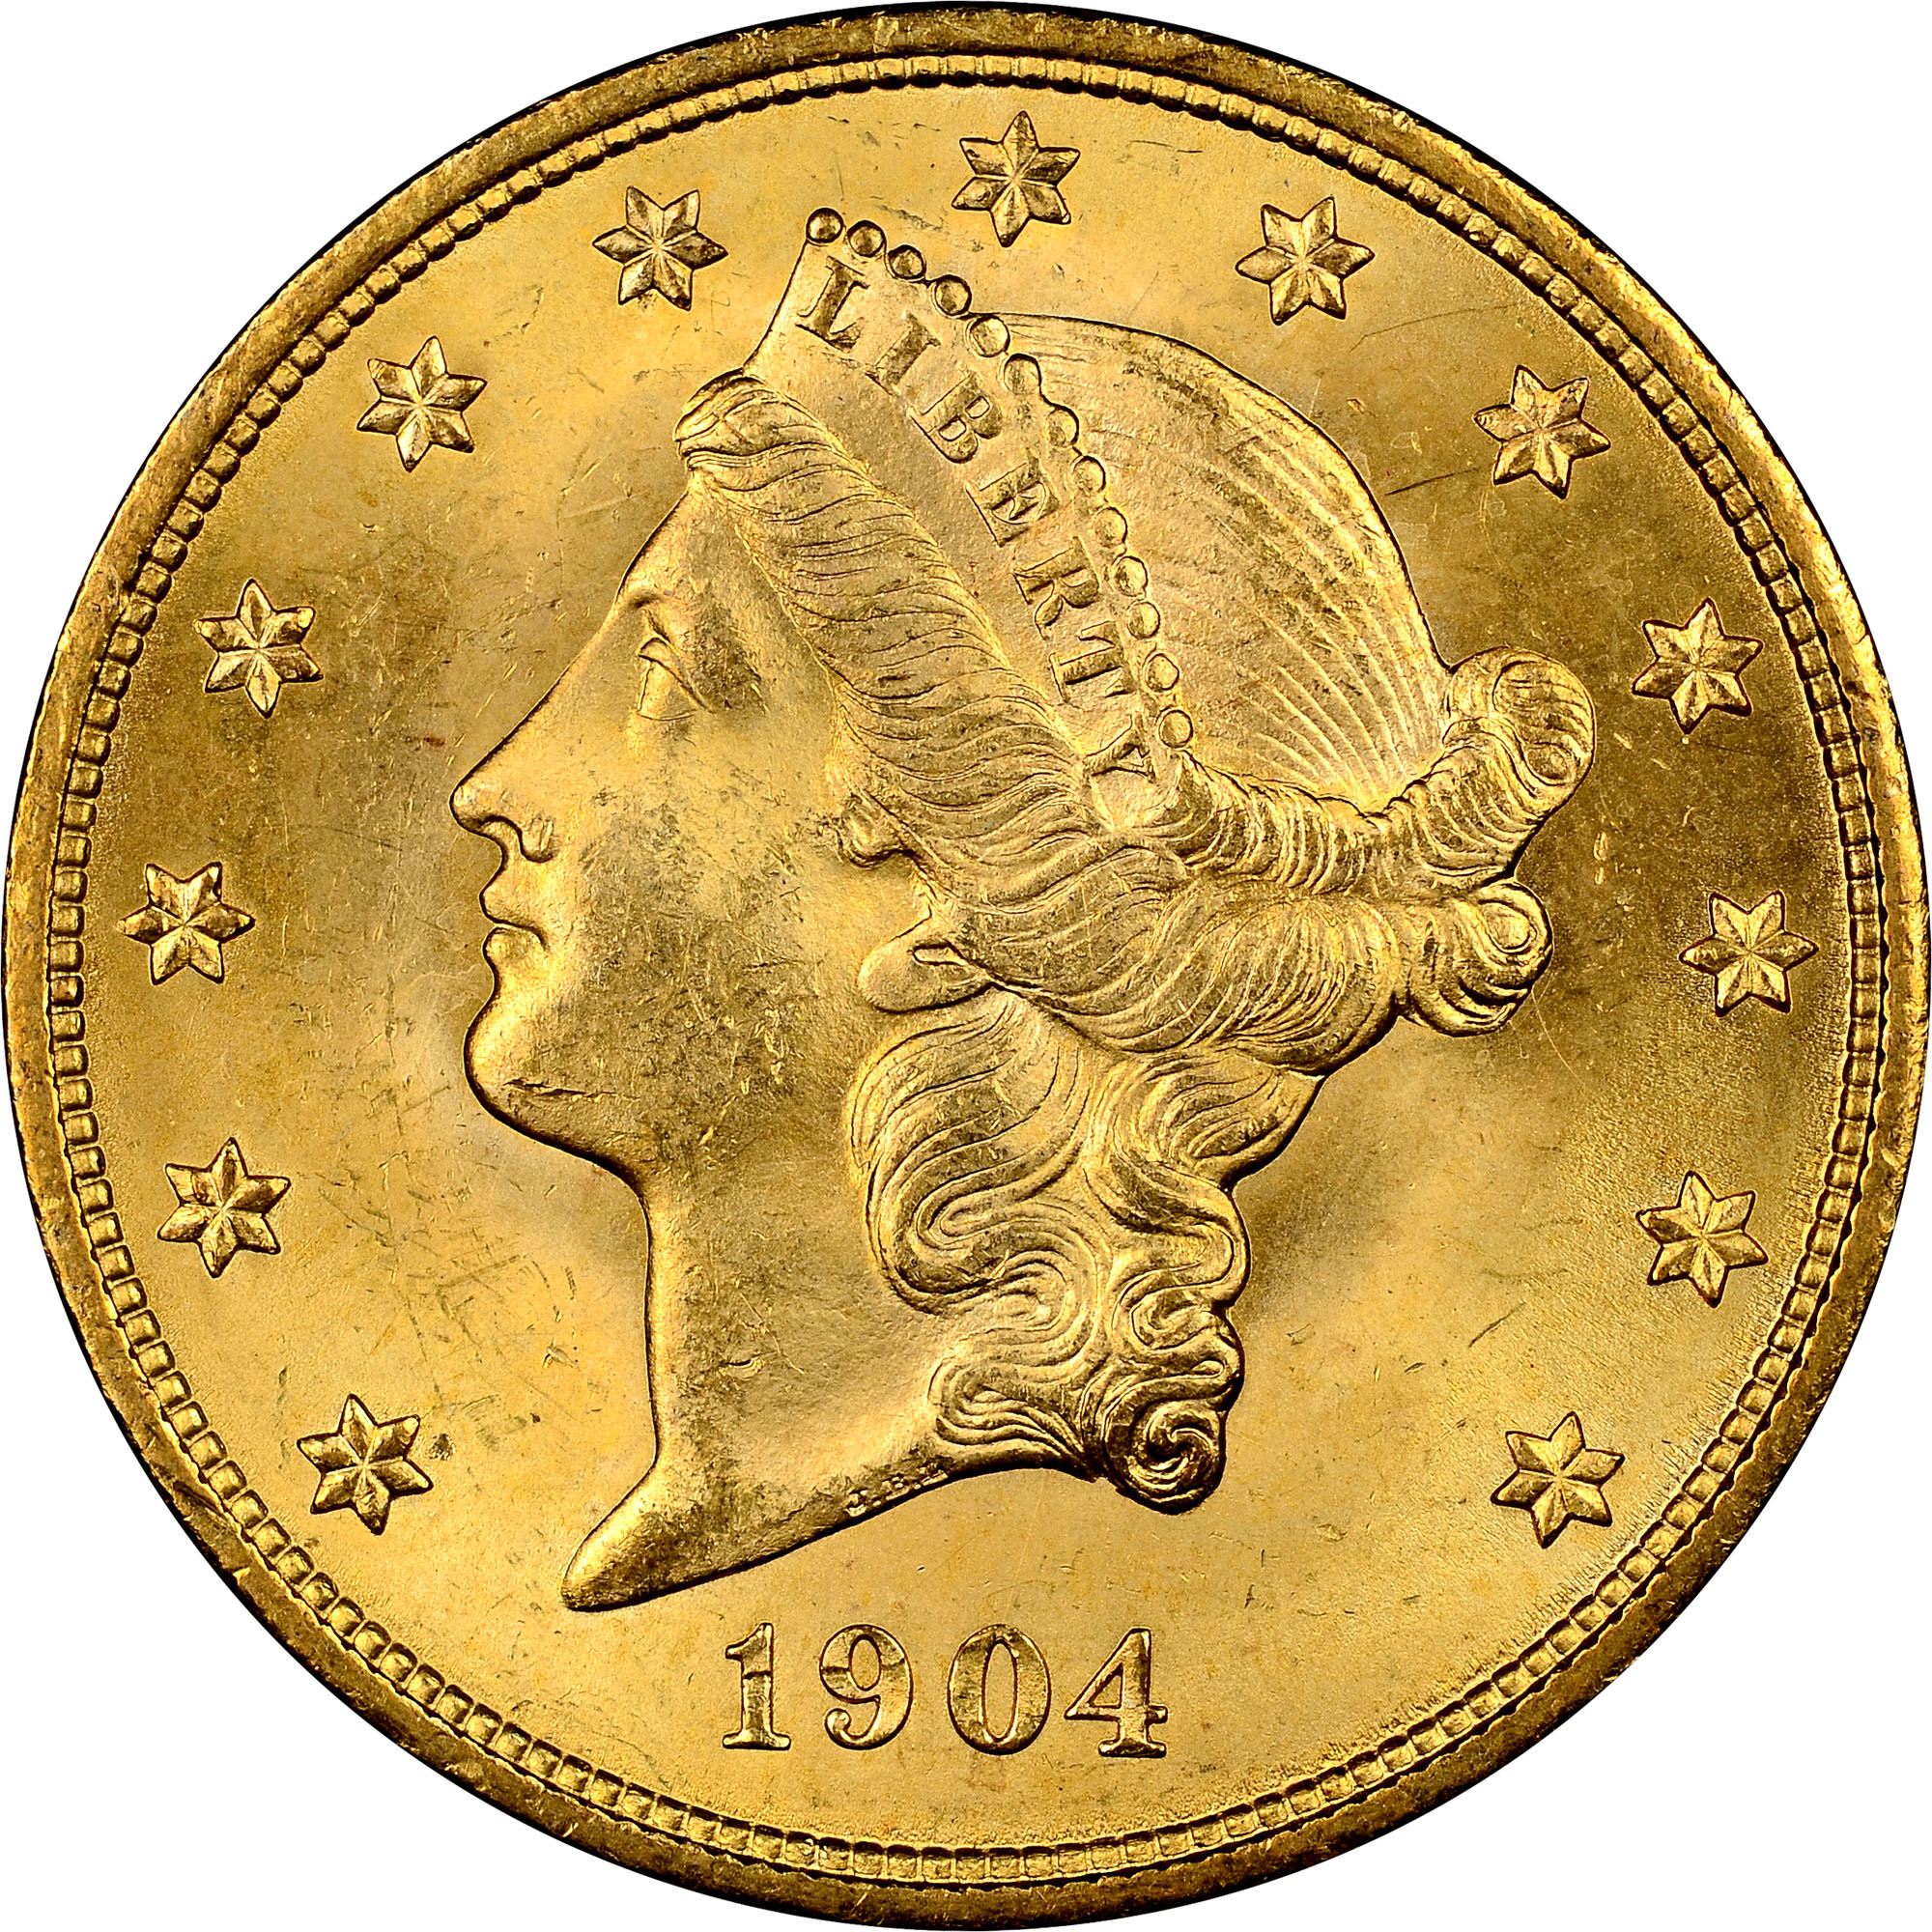 1904 0 9675 Oz America Liberty Head 900 Gold Coin Lpm